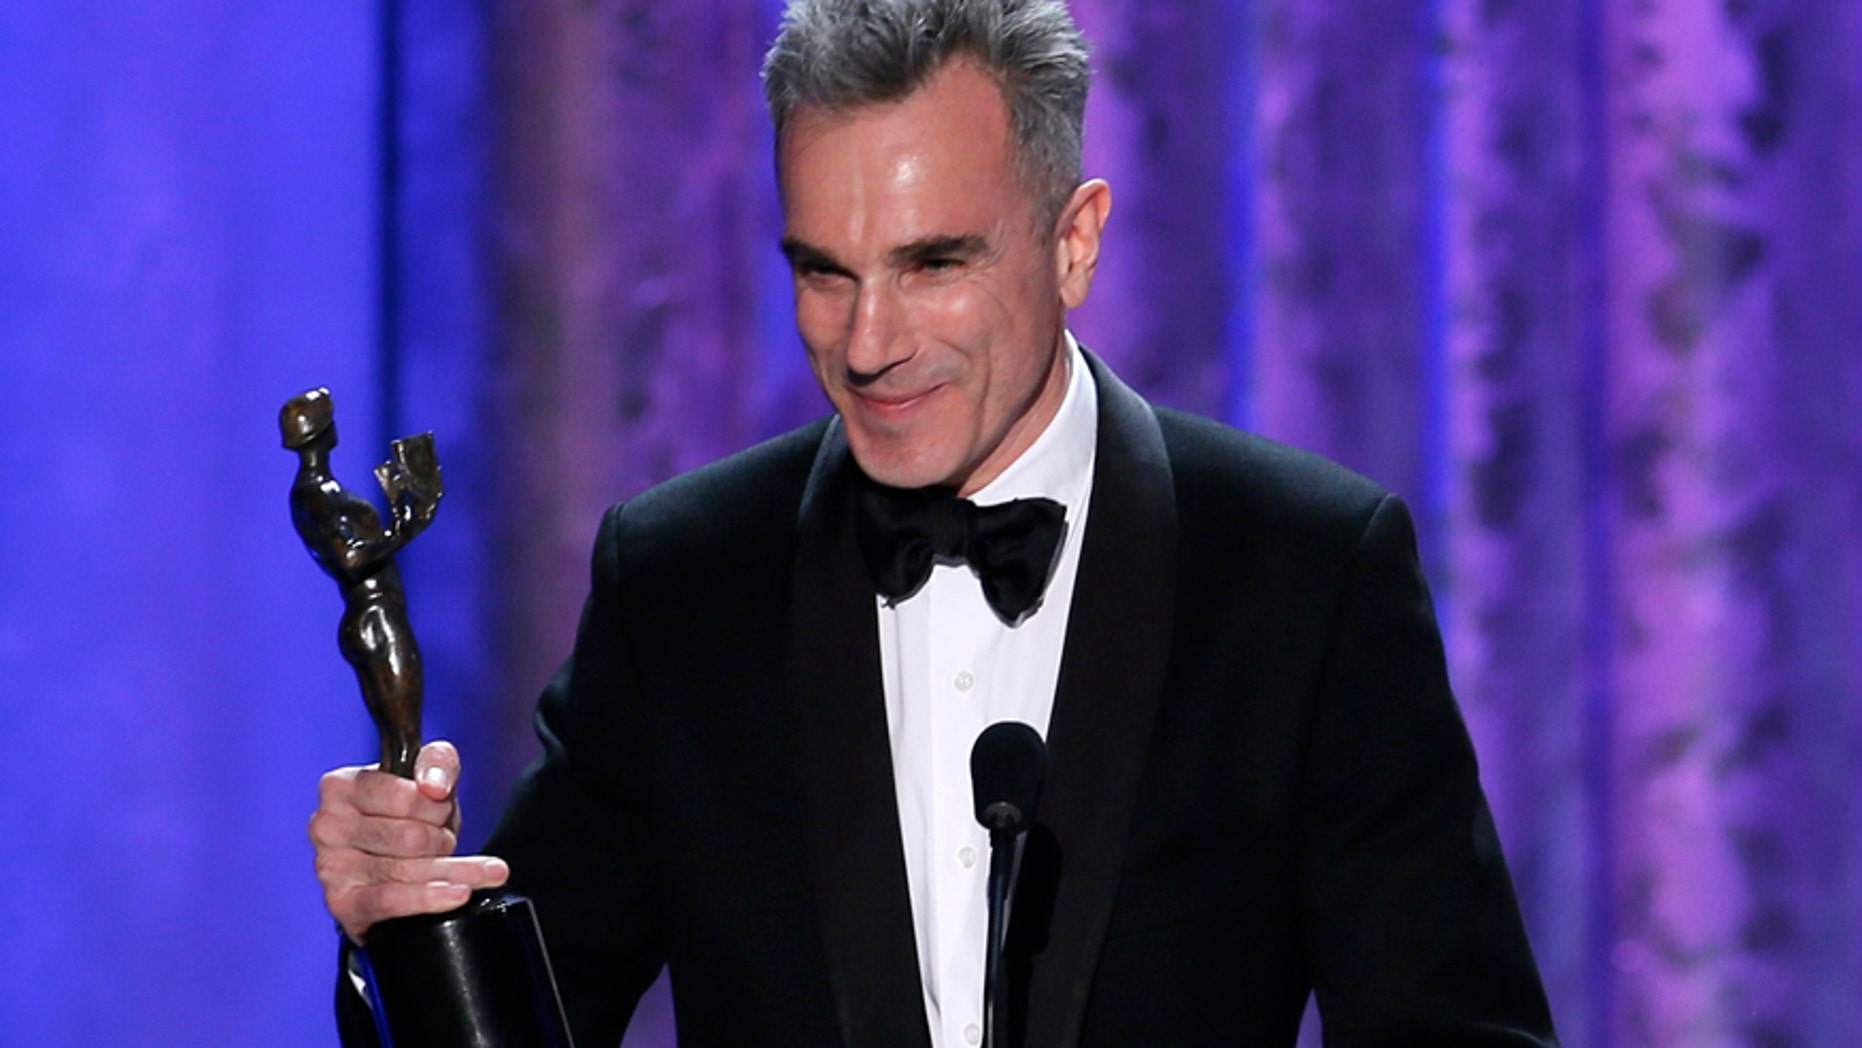 """Daniel Day-Lewis accepts the award for outstanding male actor in a leading role for """"Lincoln"""" at the 19th annual Screen Actors Guild Awards in Los Angeles, California January 27, 2013."""